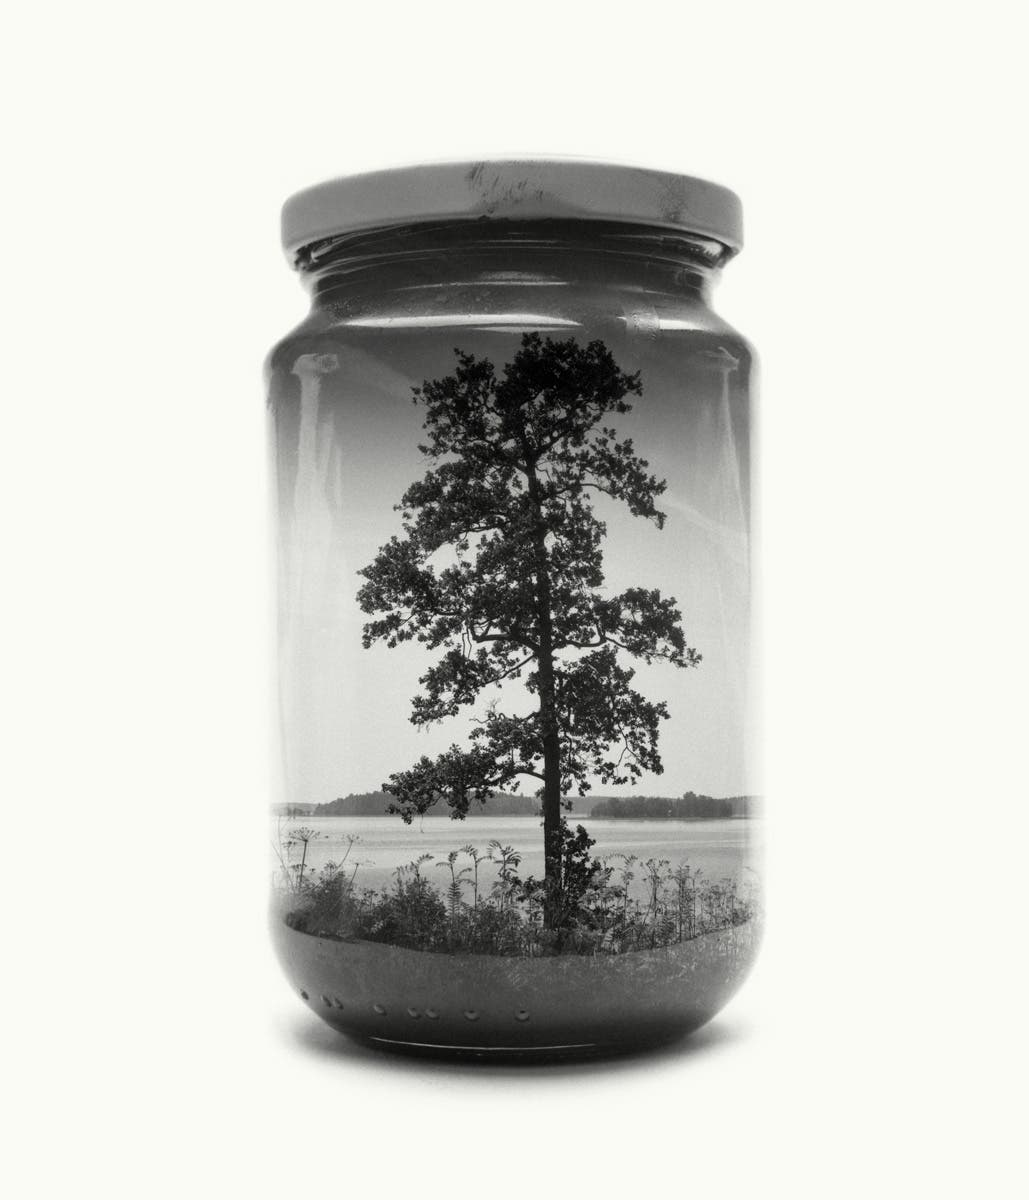 Christoffer Relander Collects Landscapes in Jars By Using Double Exposure